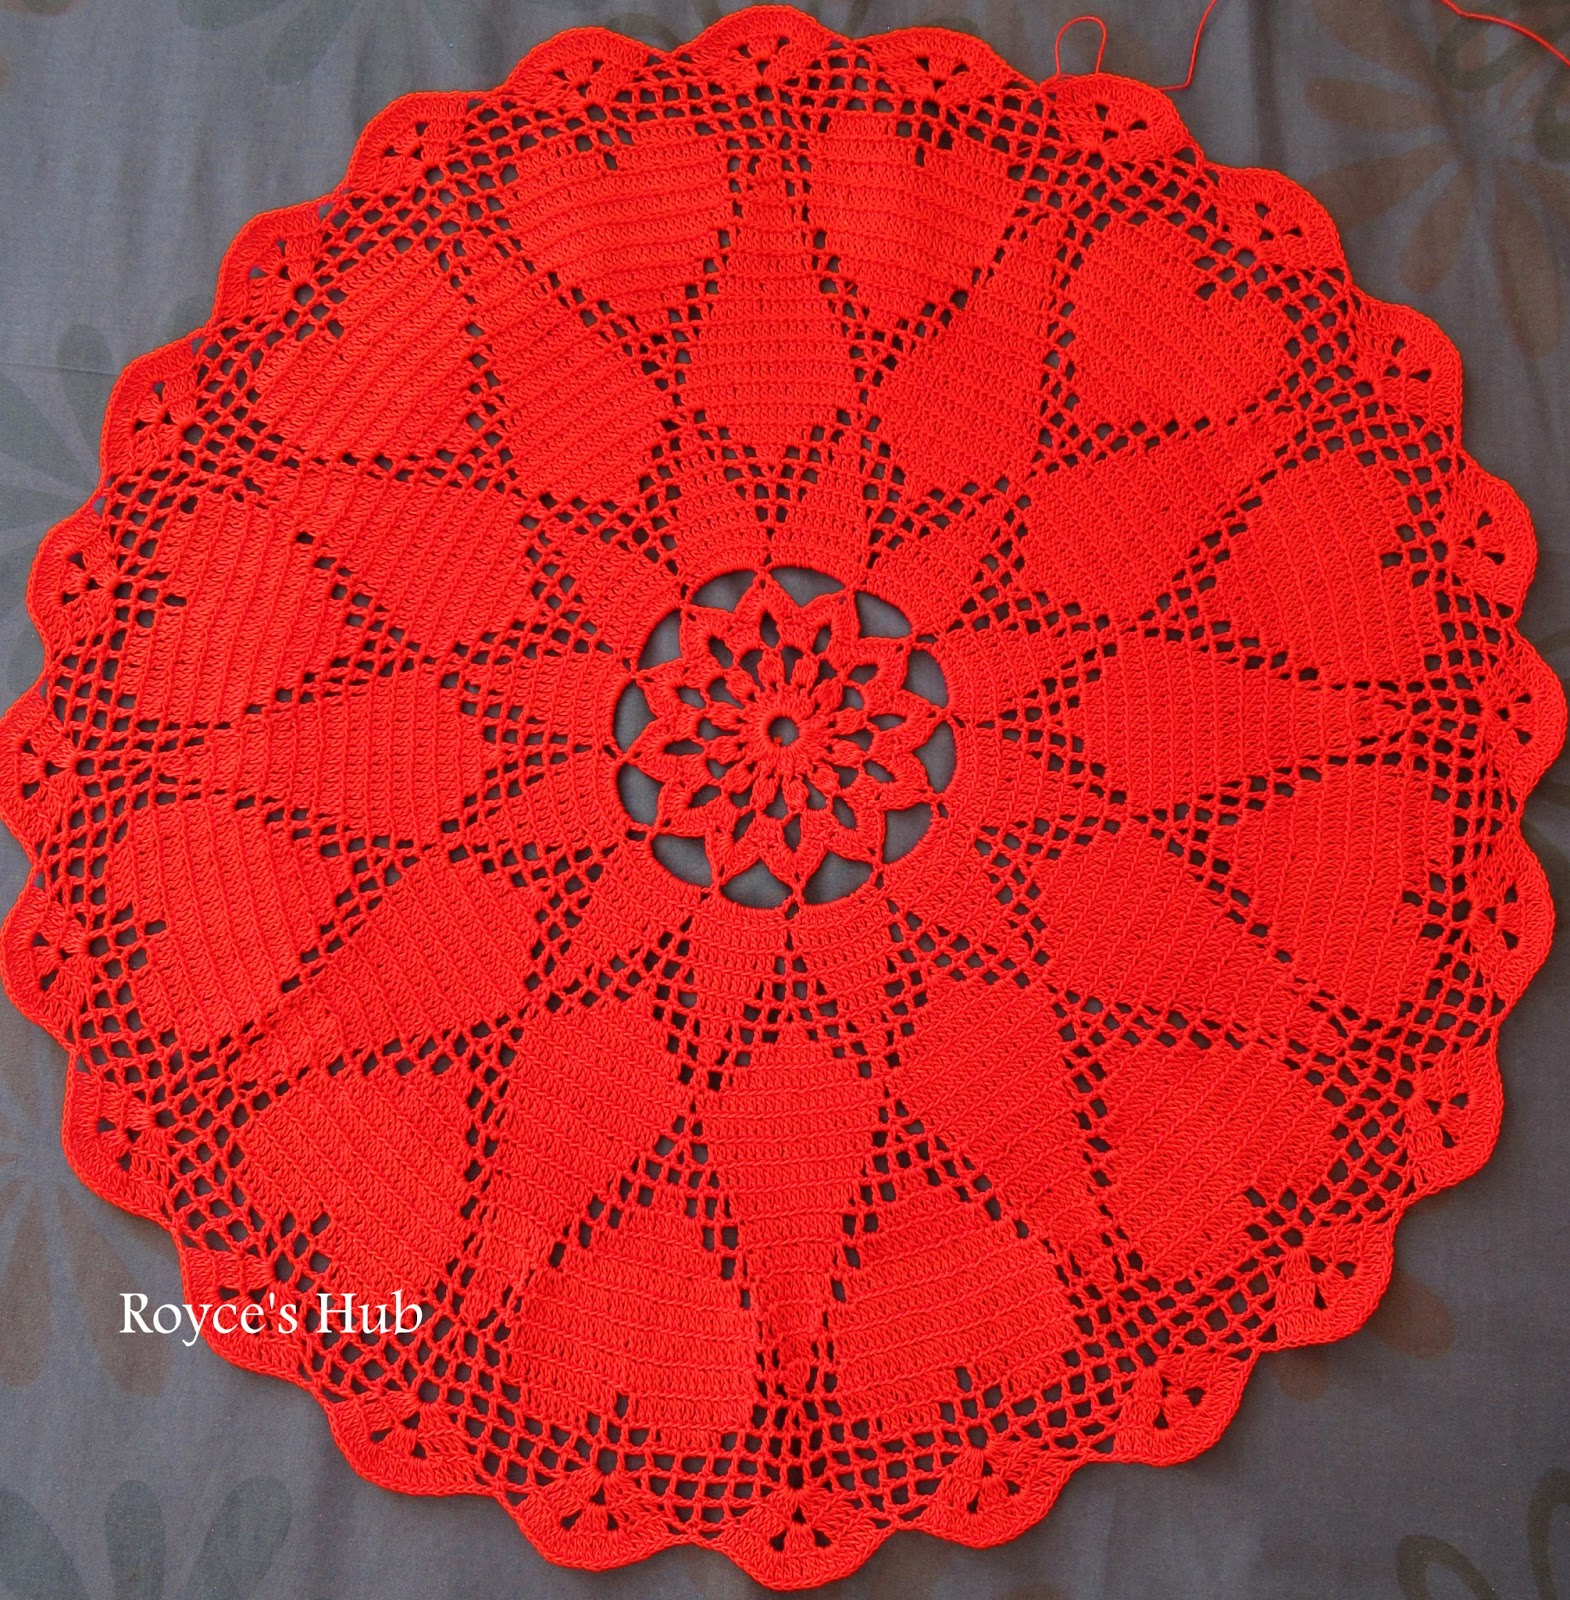 Free Crochet Pattern For Heart Doily : Royces Hub: Filet Crochet Heart Doily